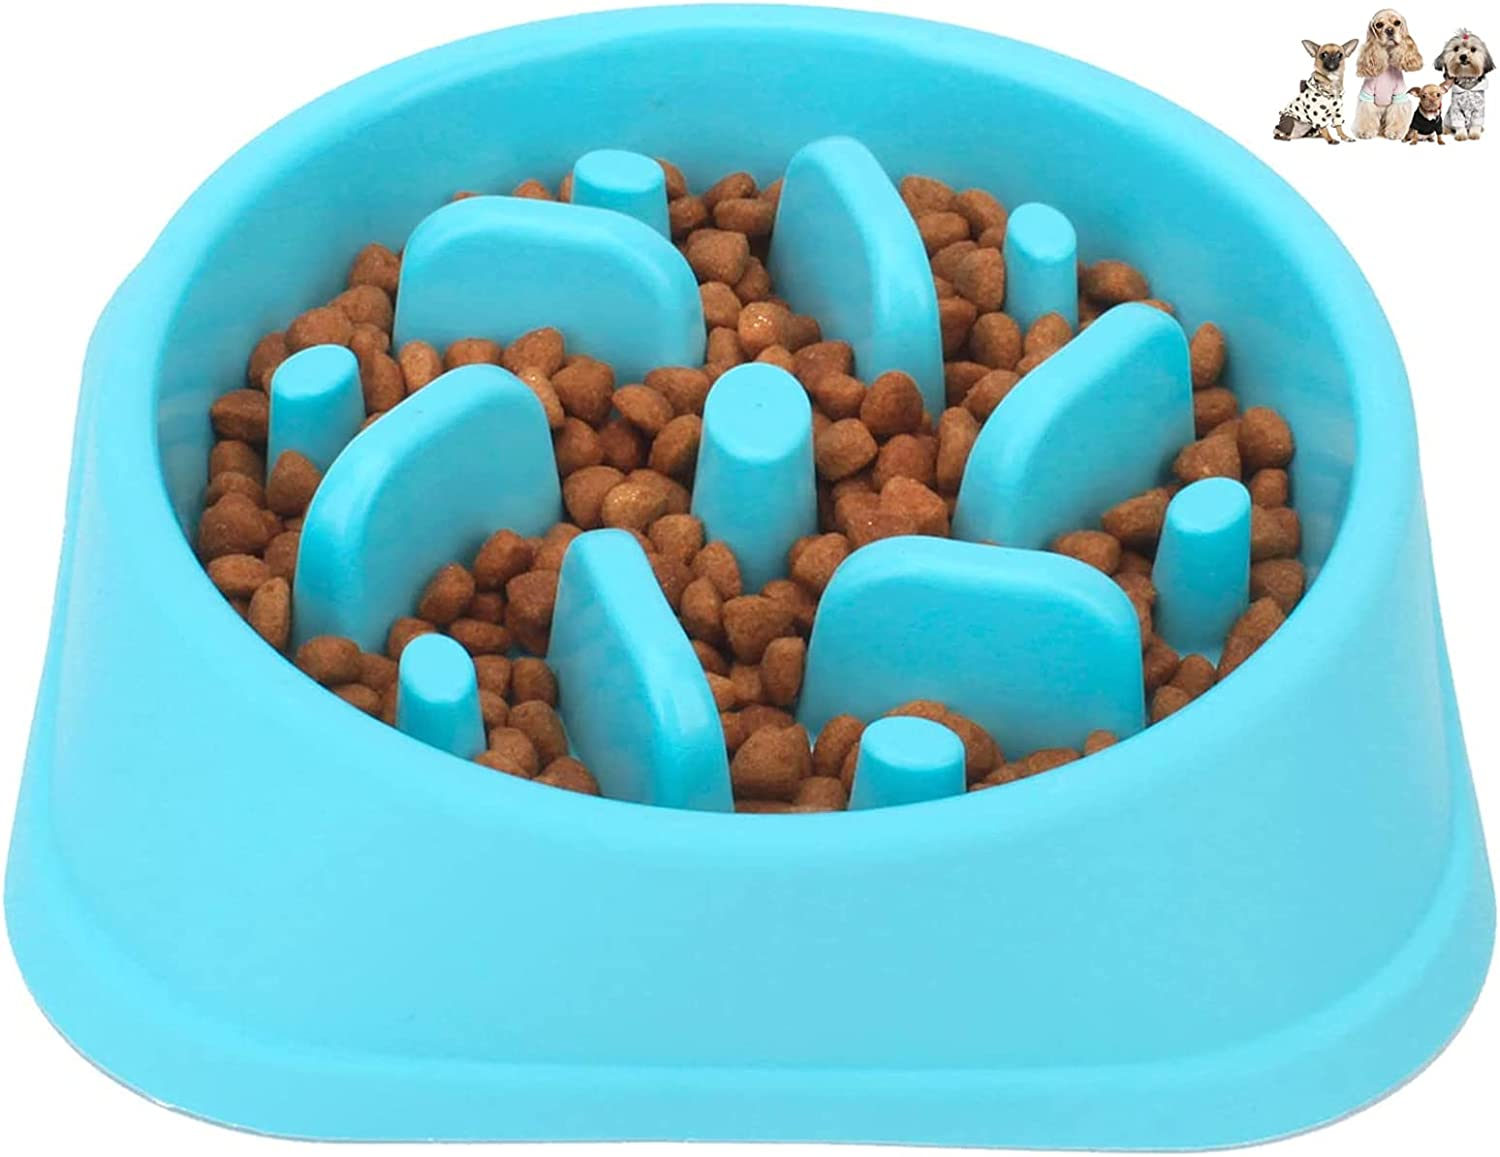 UXJUNHUI Non-Slip Puzzle Bowl, Anti-swallowing pet Slow Food Plate, Dog Feeder, Slow Food pet Bowl Environmentally Friendly and Durable, Anti-Suffocation Healthy Design Bowl